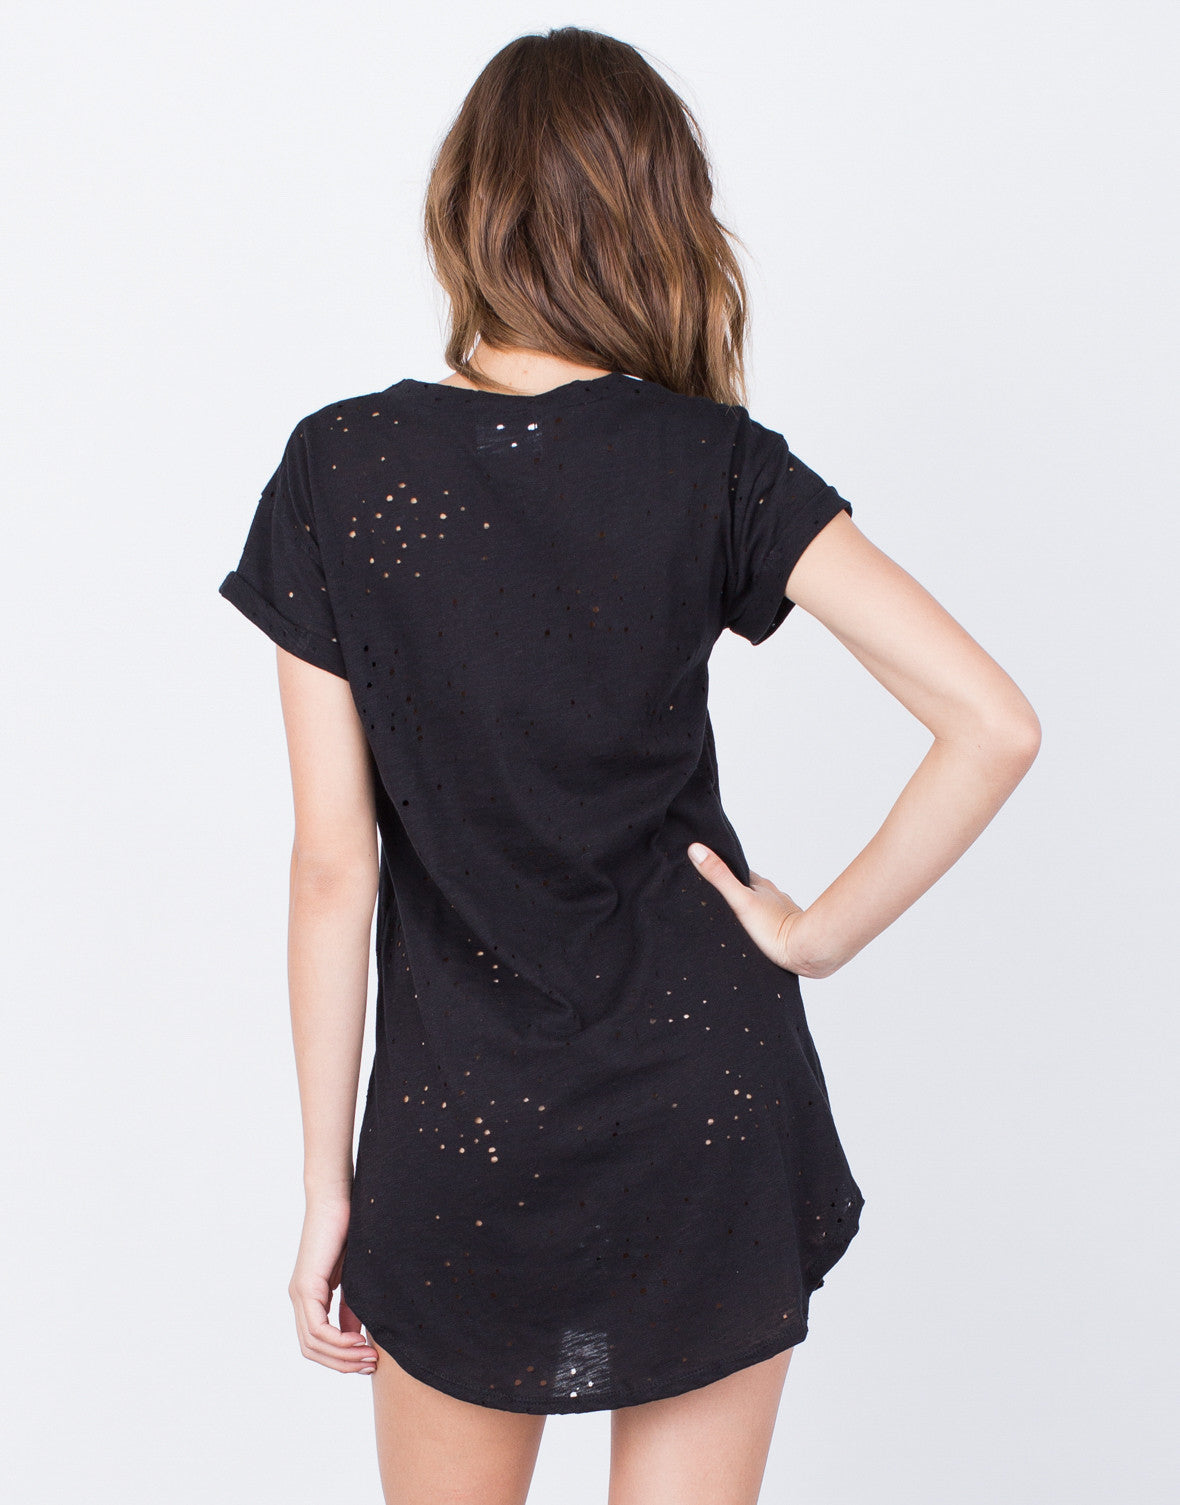 Back View of Lace-Up Tunic Dress